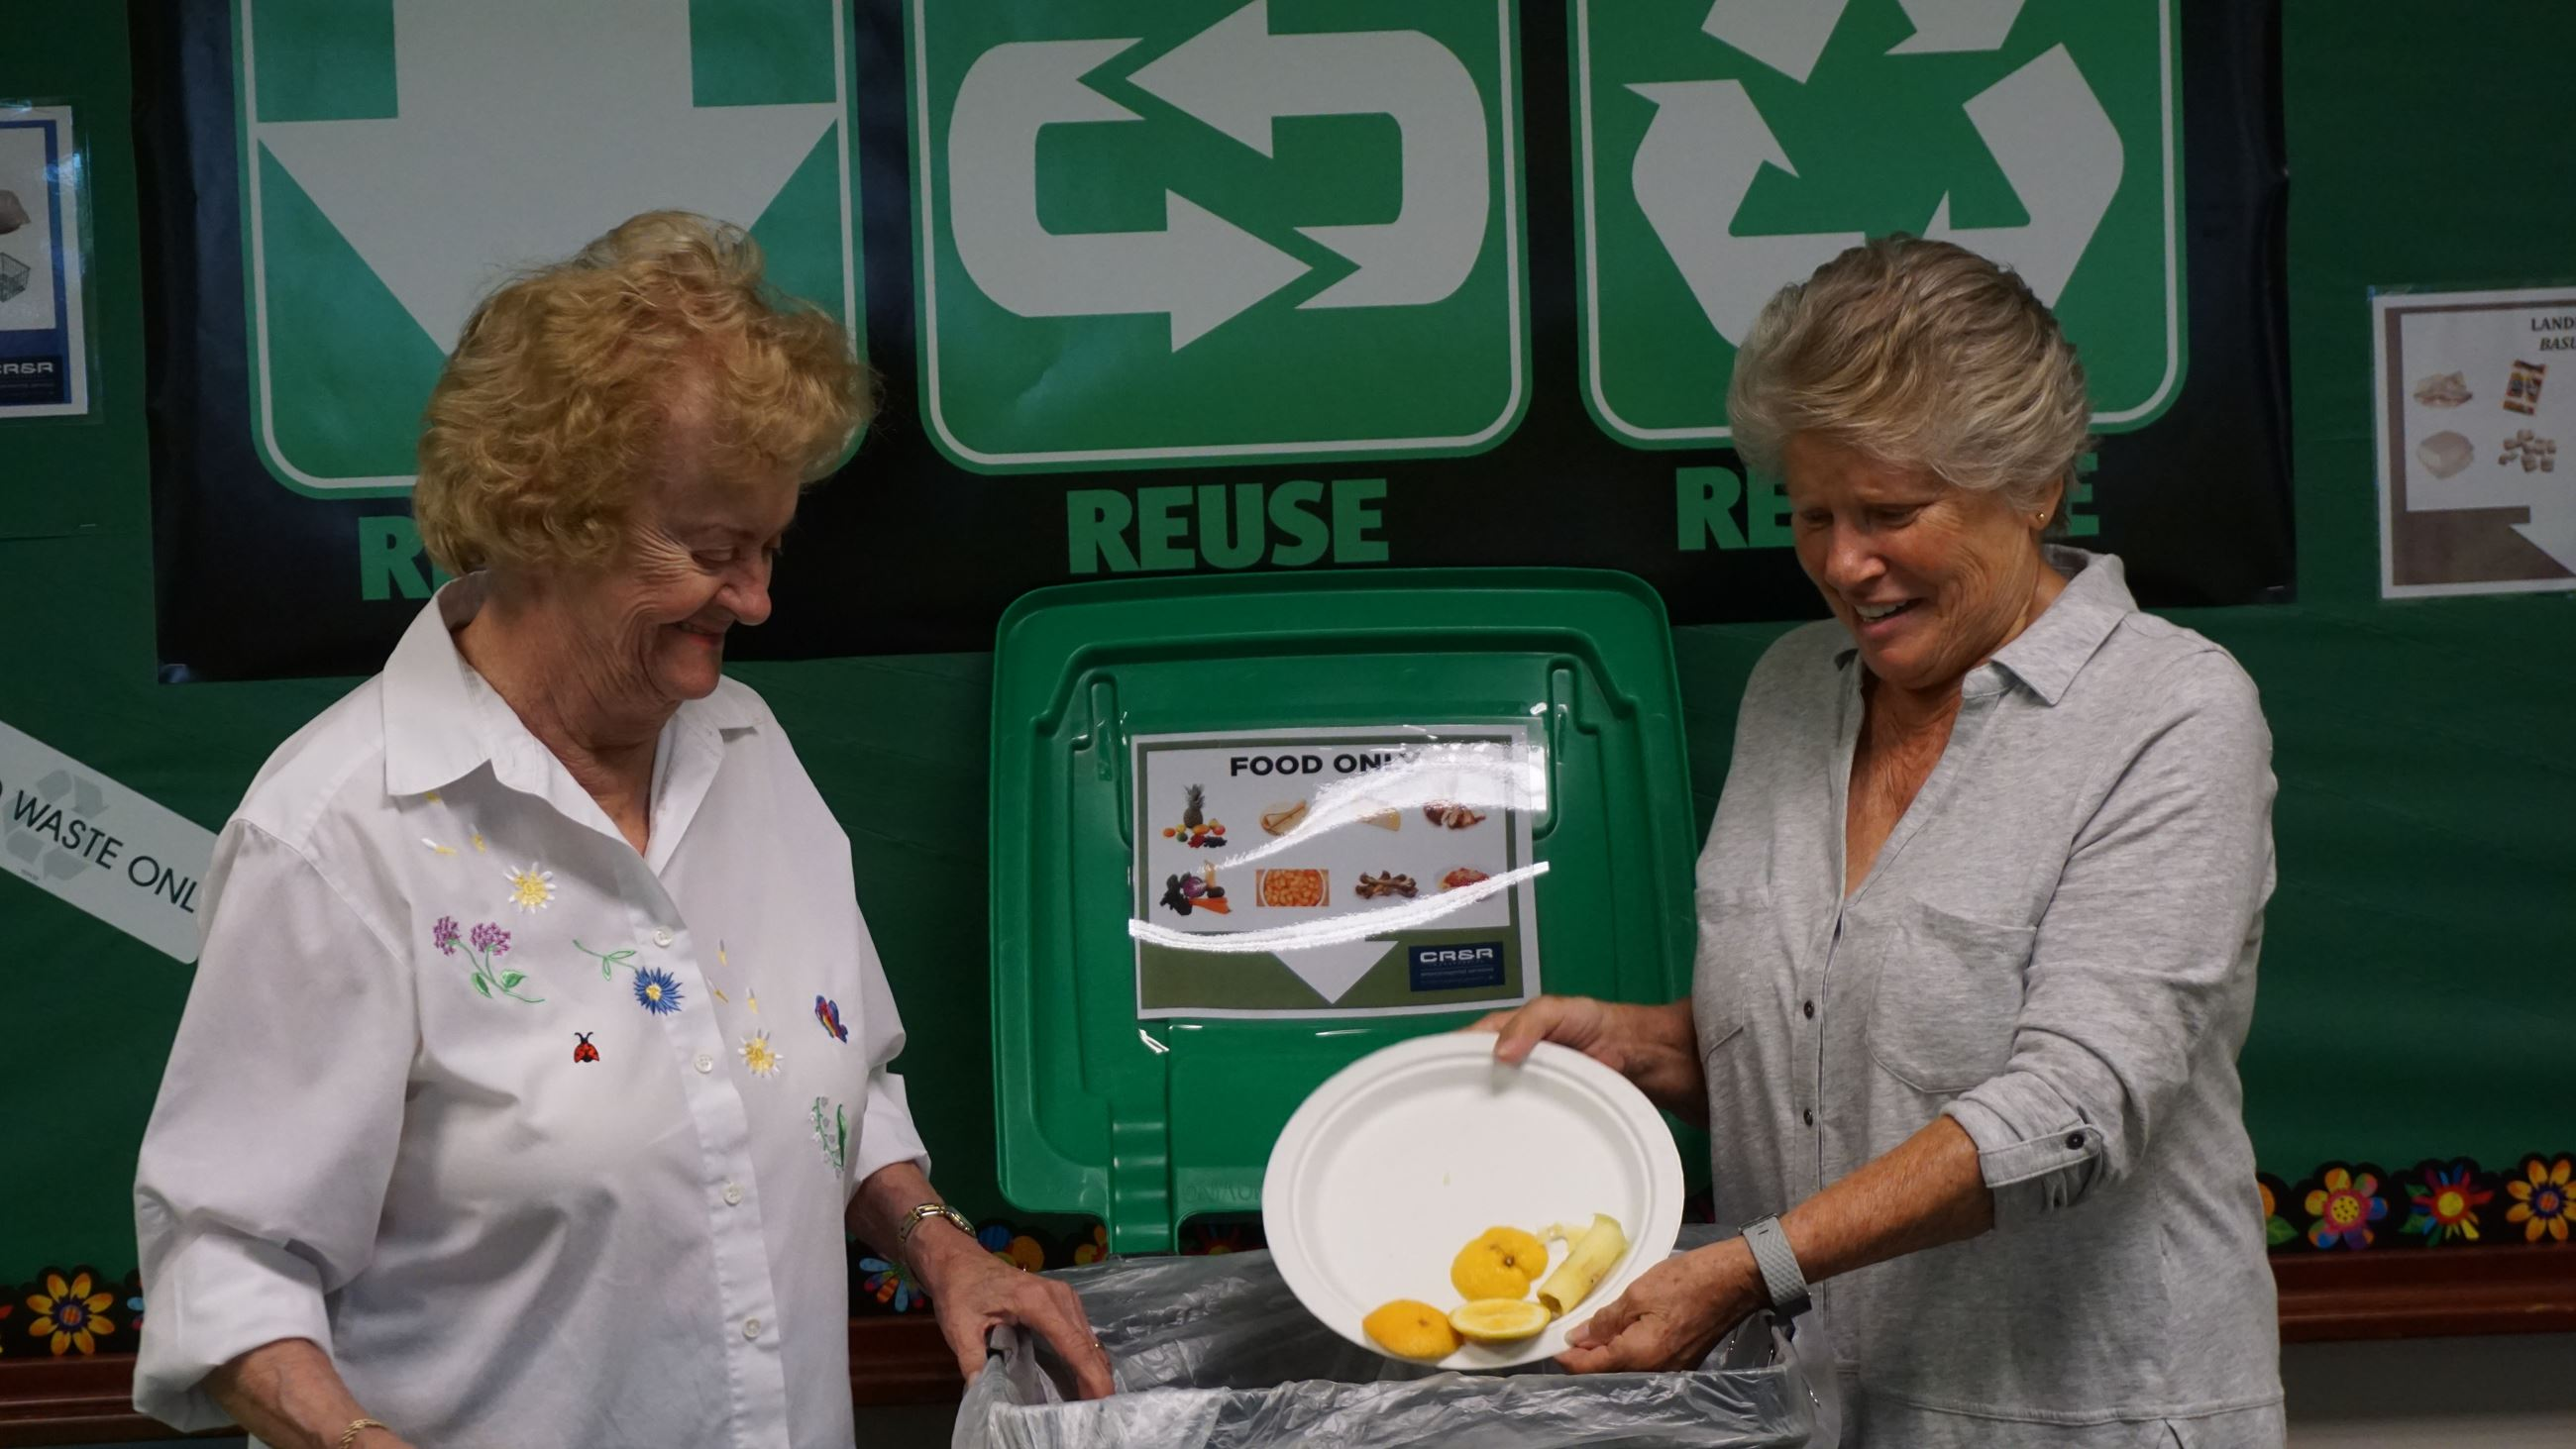 Workers showing how to reduce waste